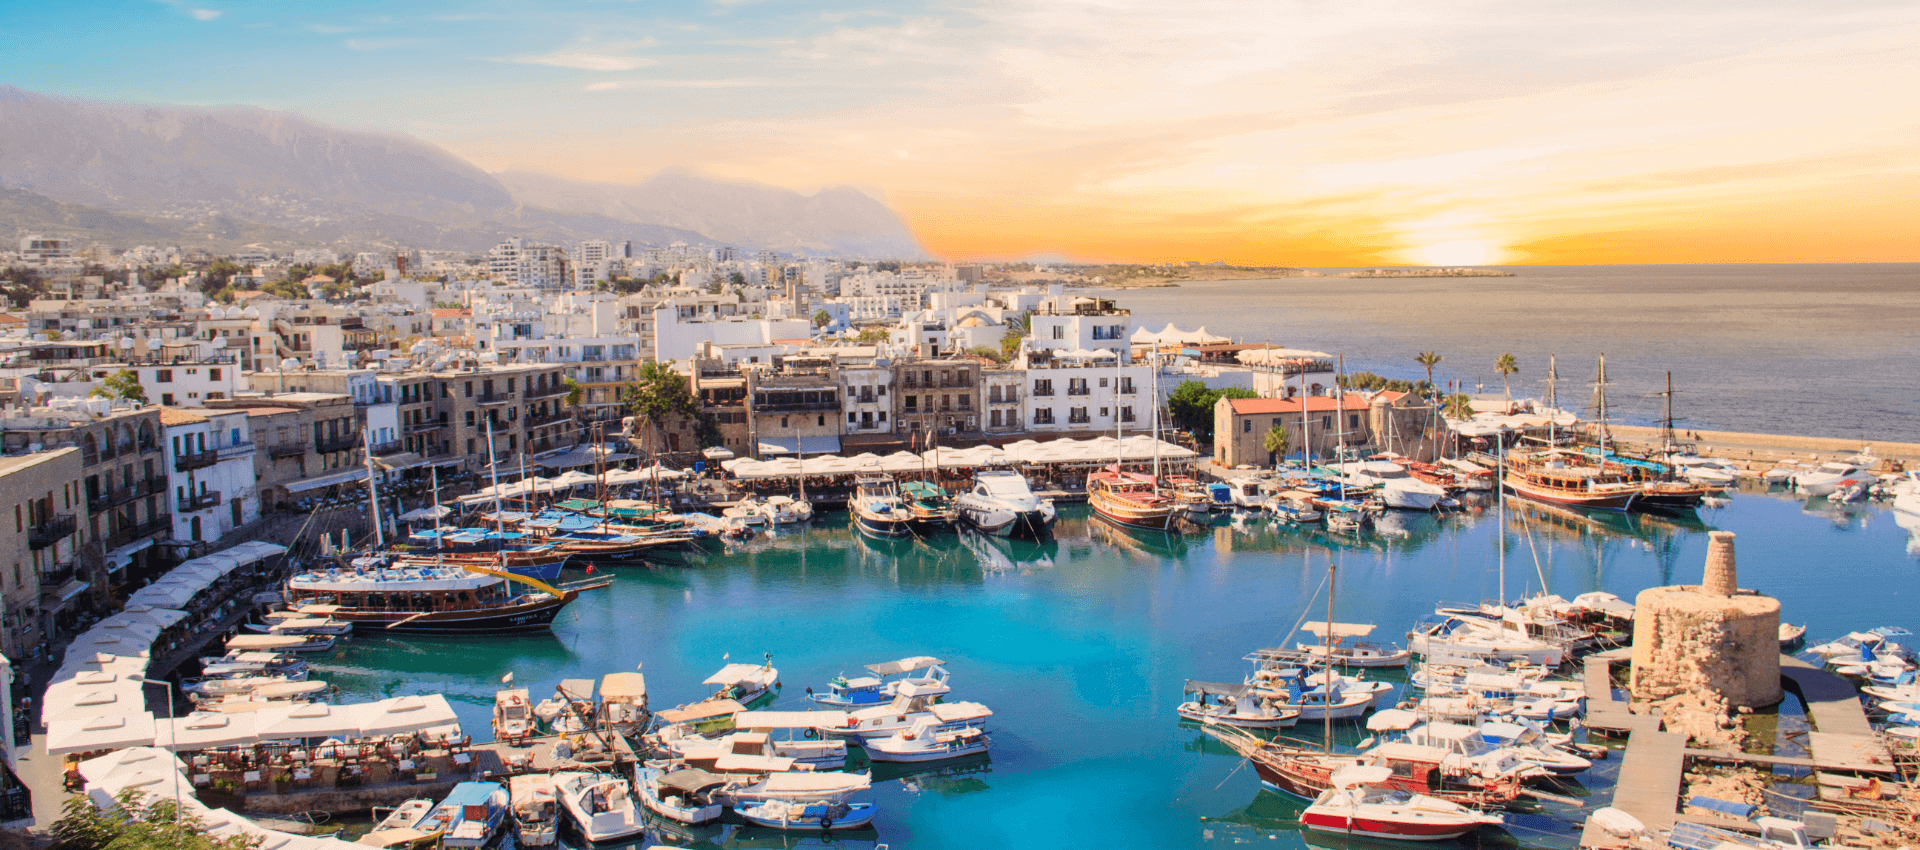 unmissable holiday opportunities in north cyprus